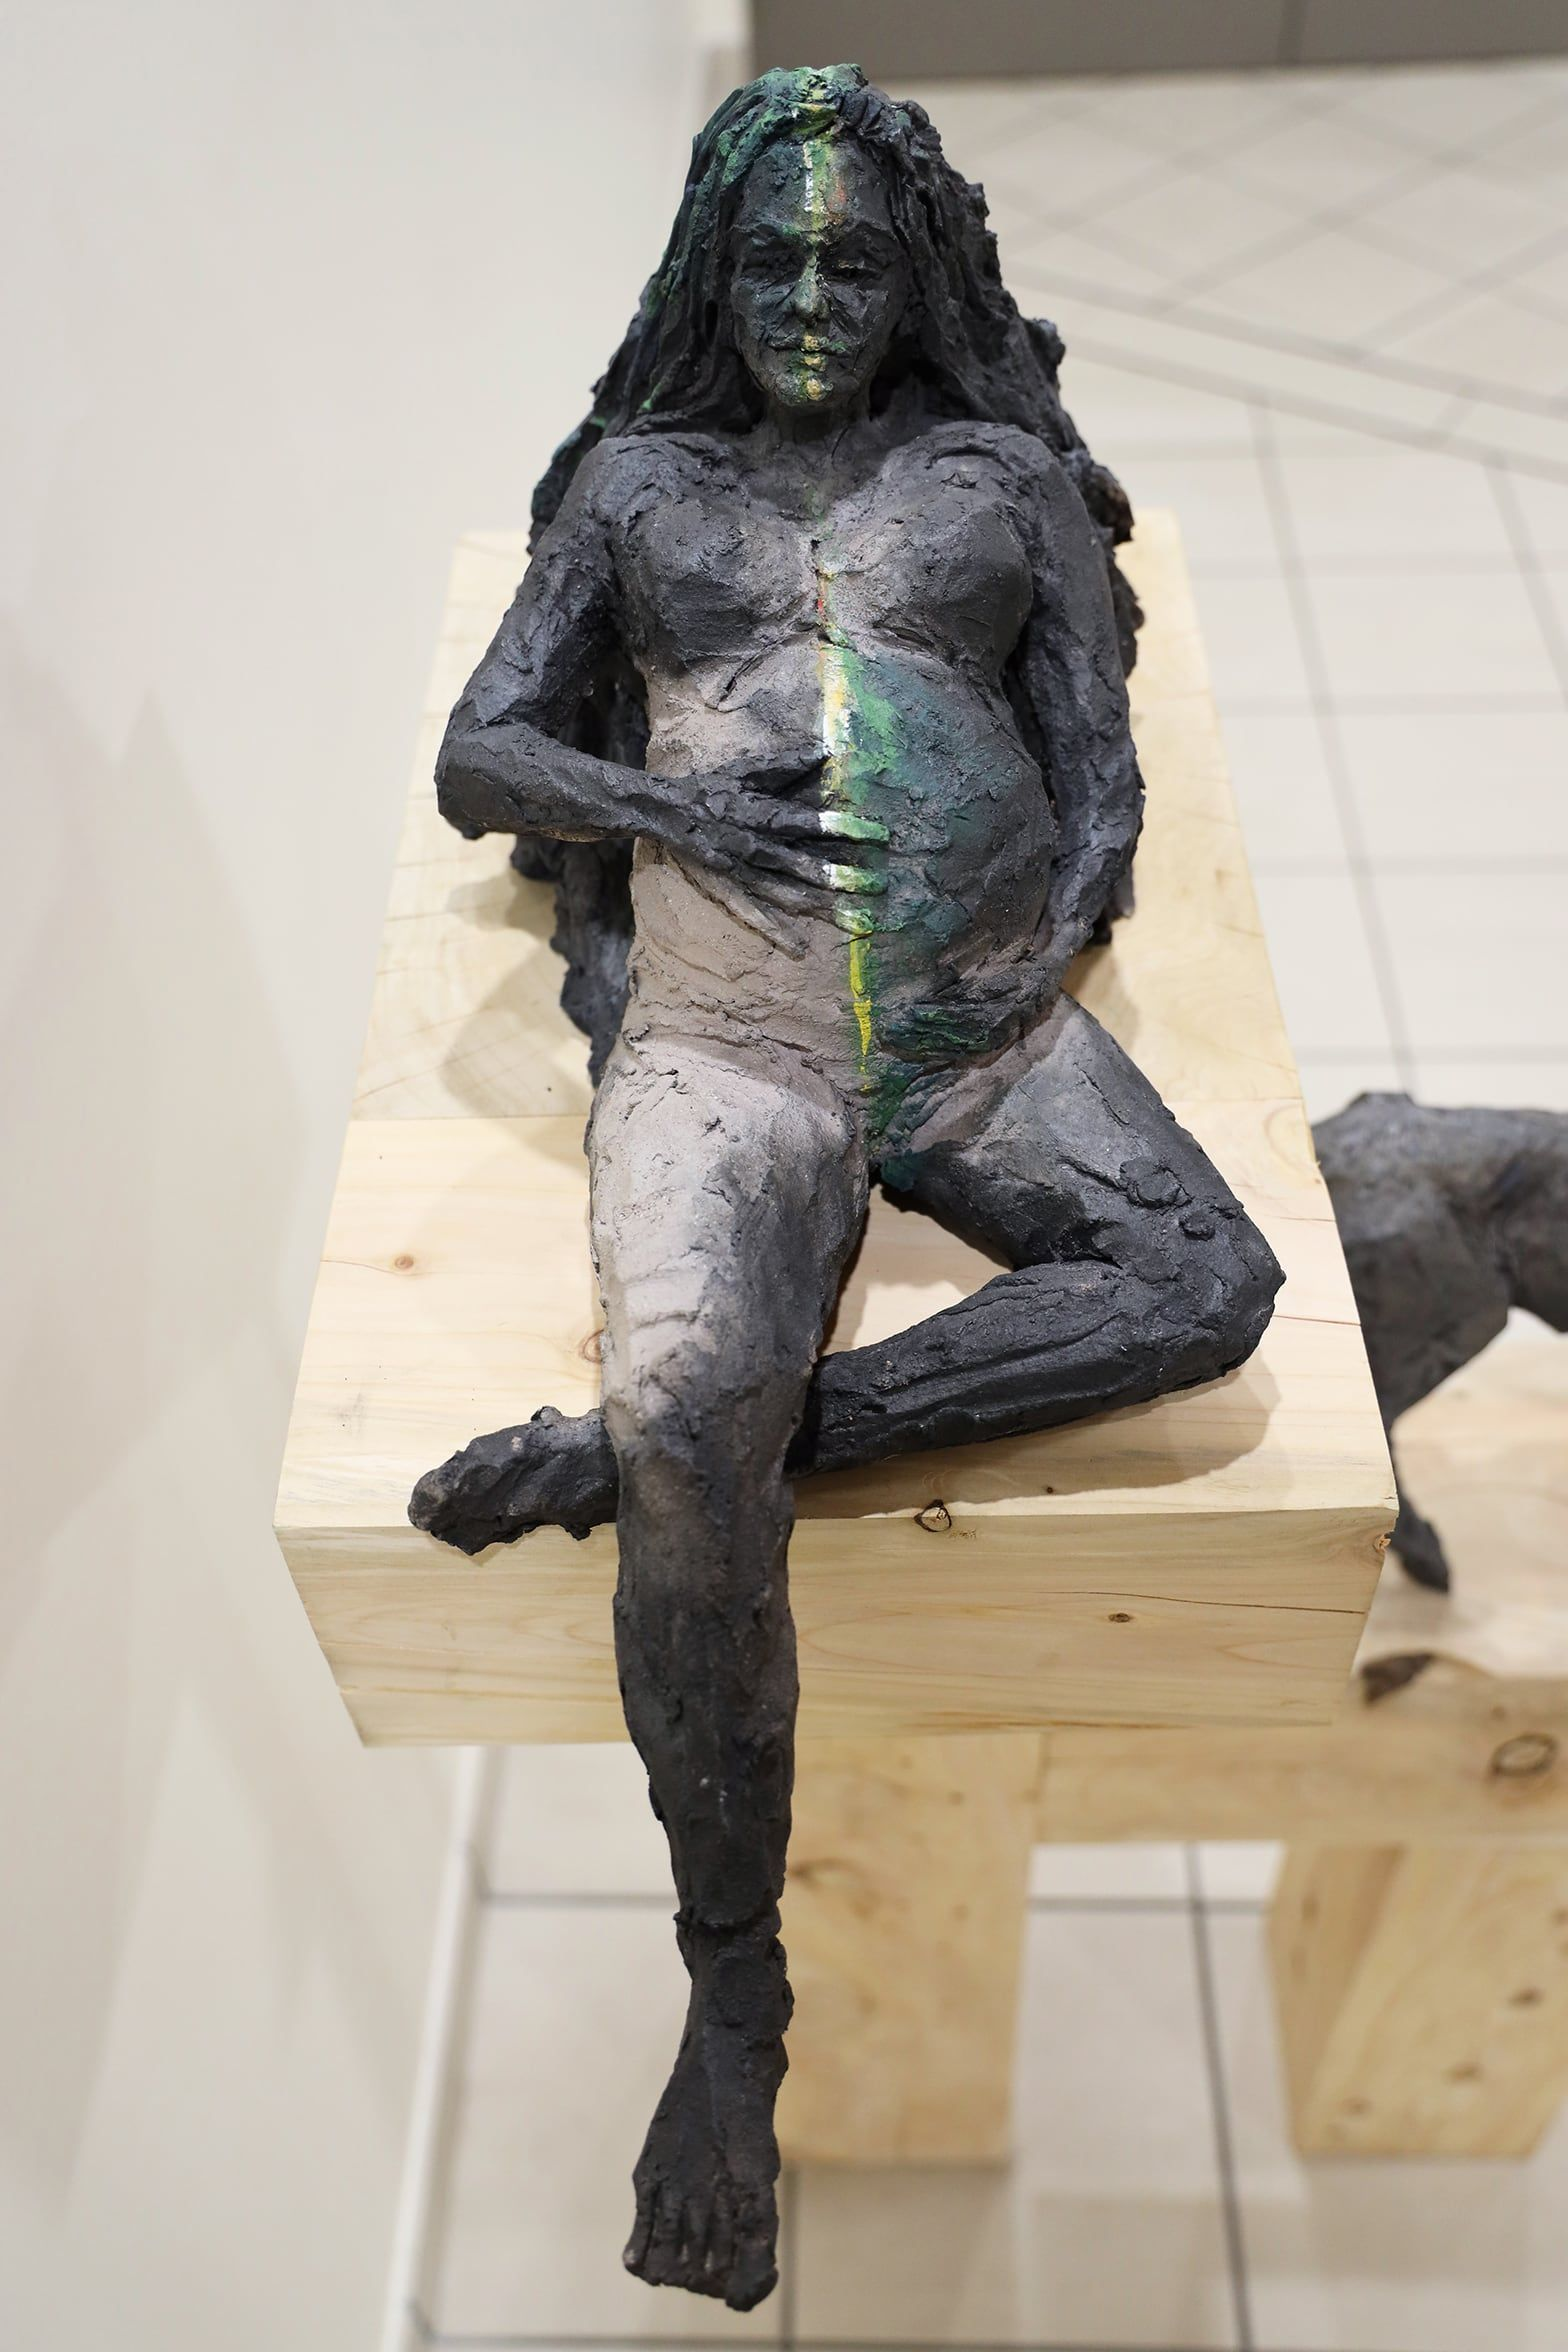 Femme Grotte,Cécile Raynal,Sculpture contemporaine, detail 2